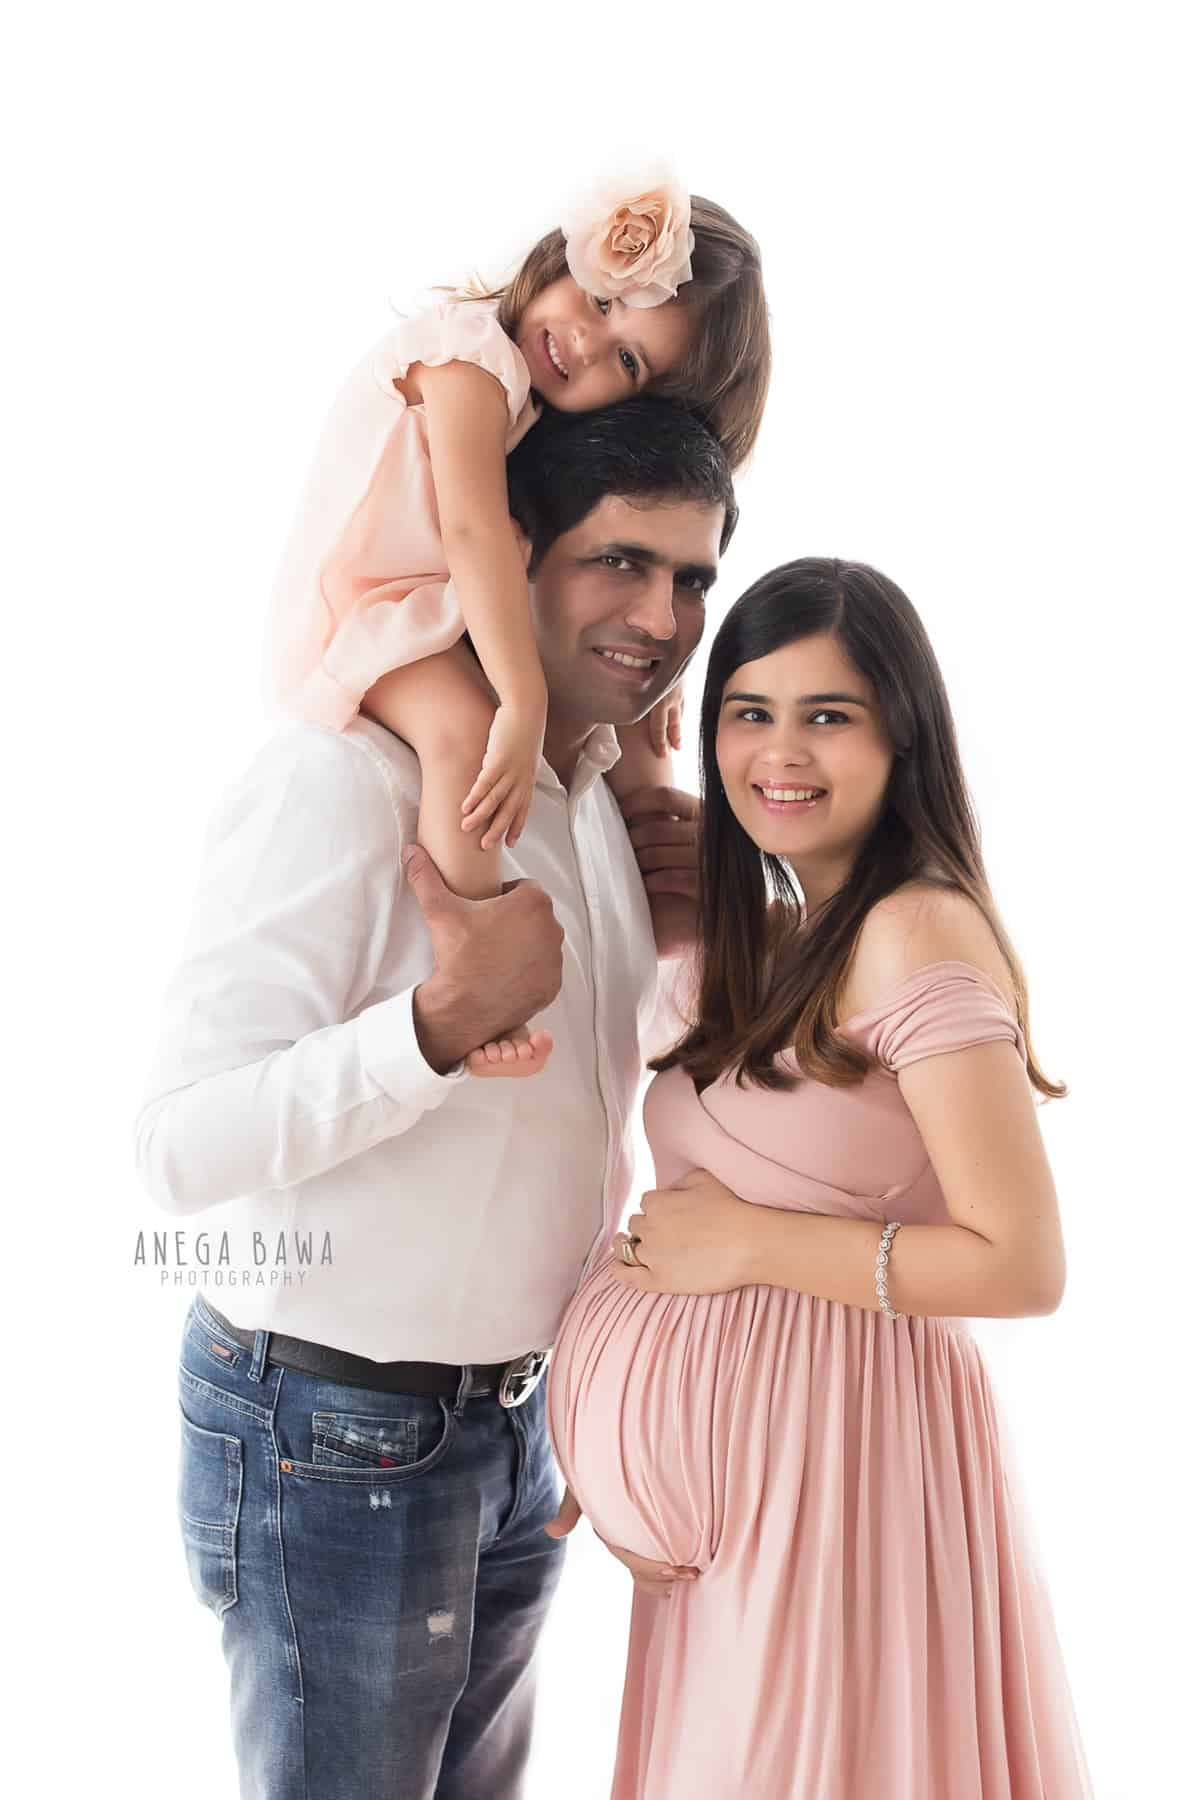 top_pregnancy_photoshoot_delhi_gurgaon_husband_daughter_pink_outfit_white_backdrop_anega_bawa (1)